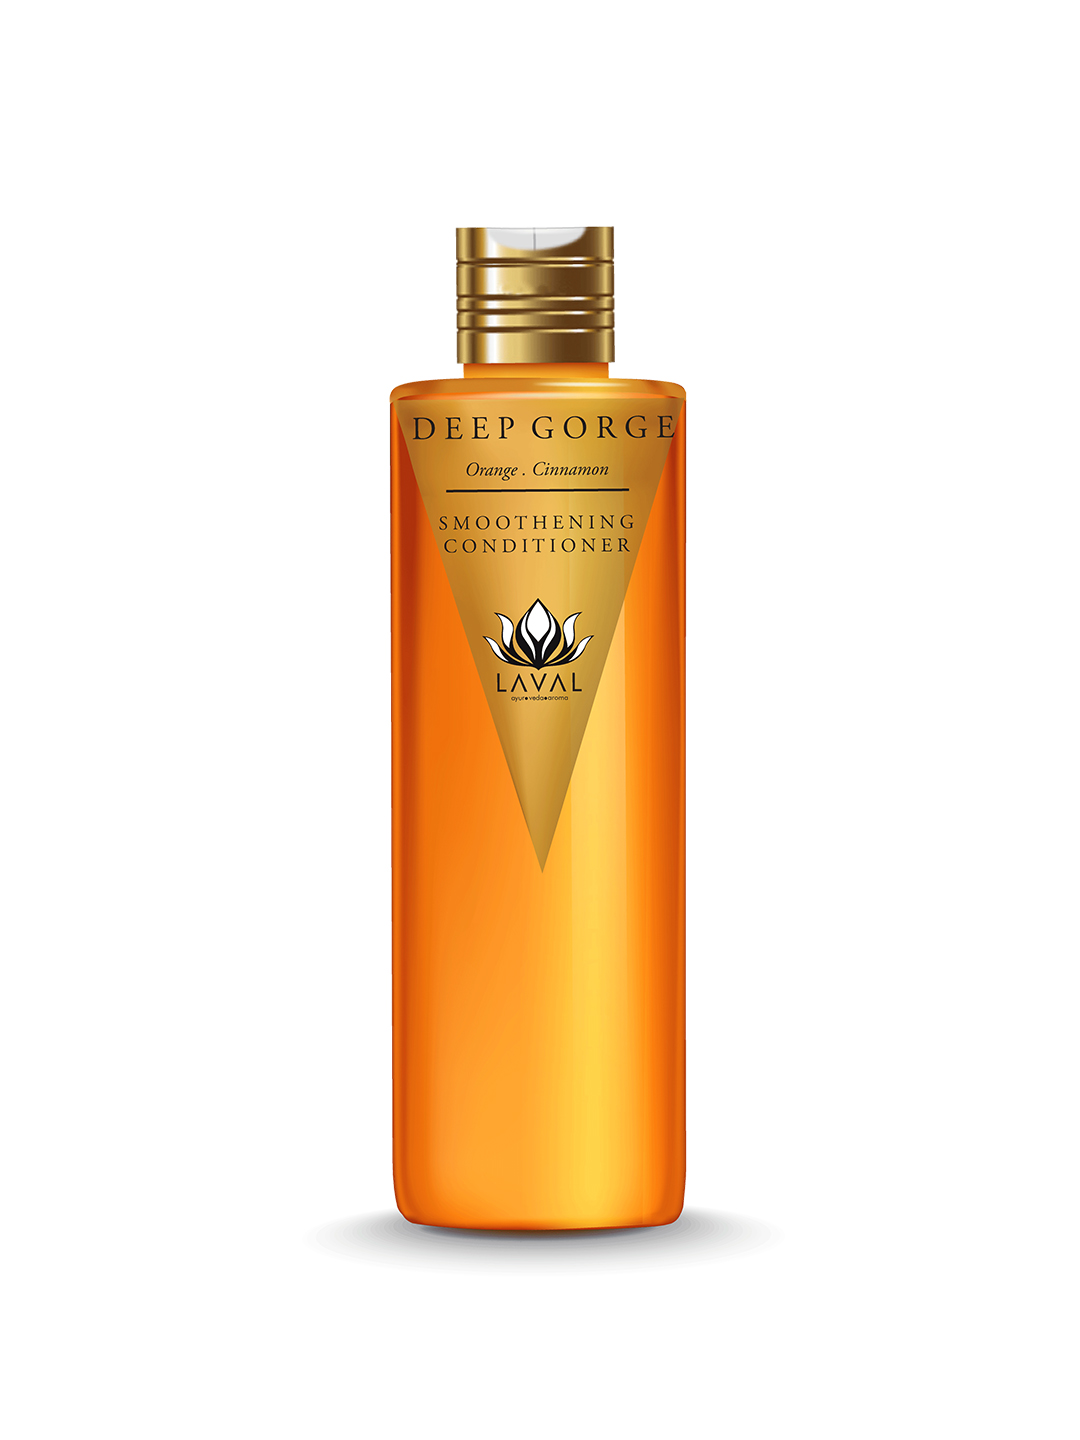 LAVAL | DEEP GORGE SMOOTHENING CONDITIONER